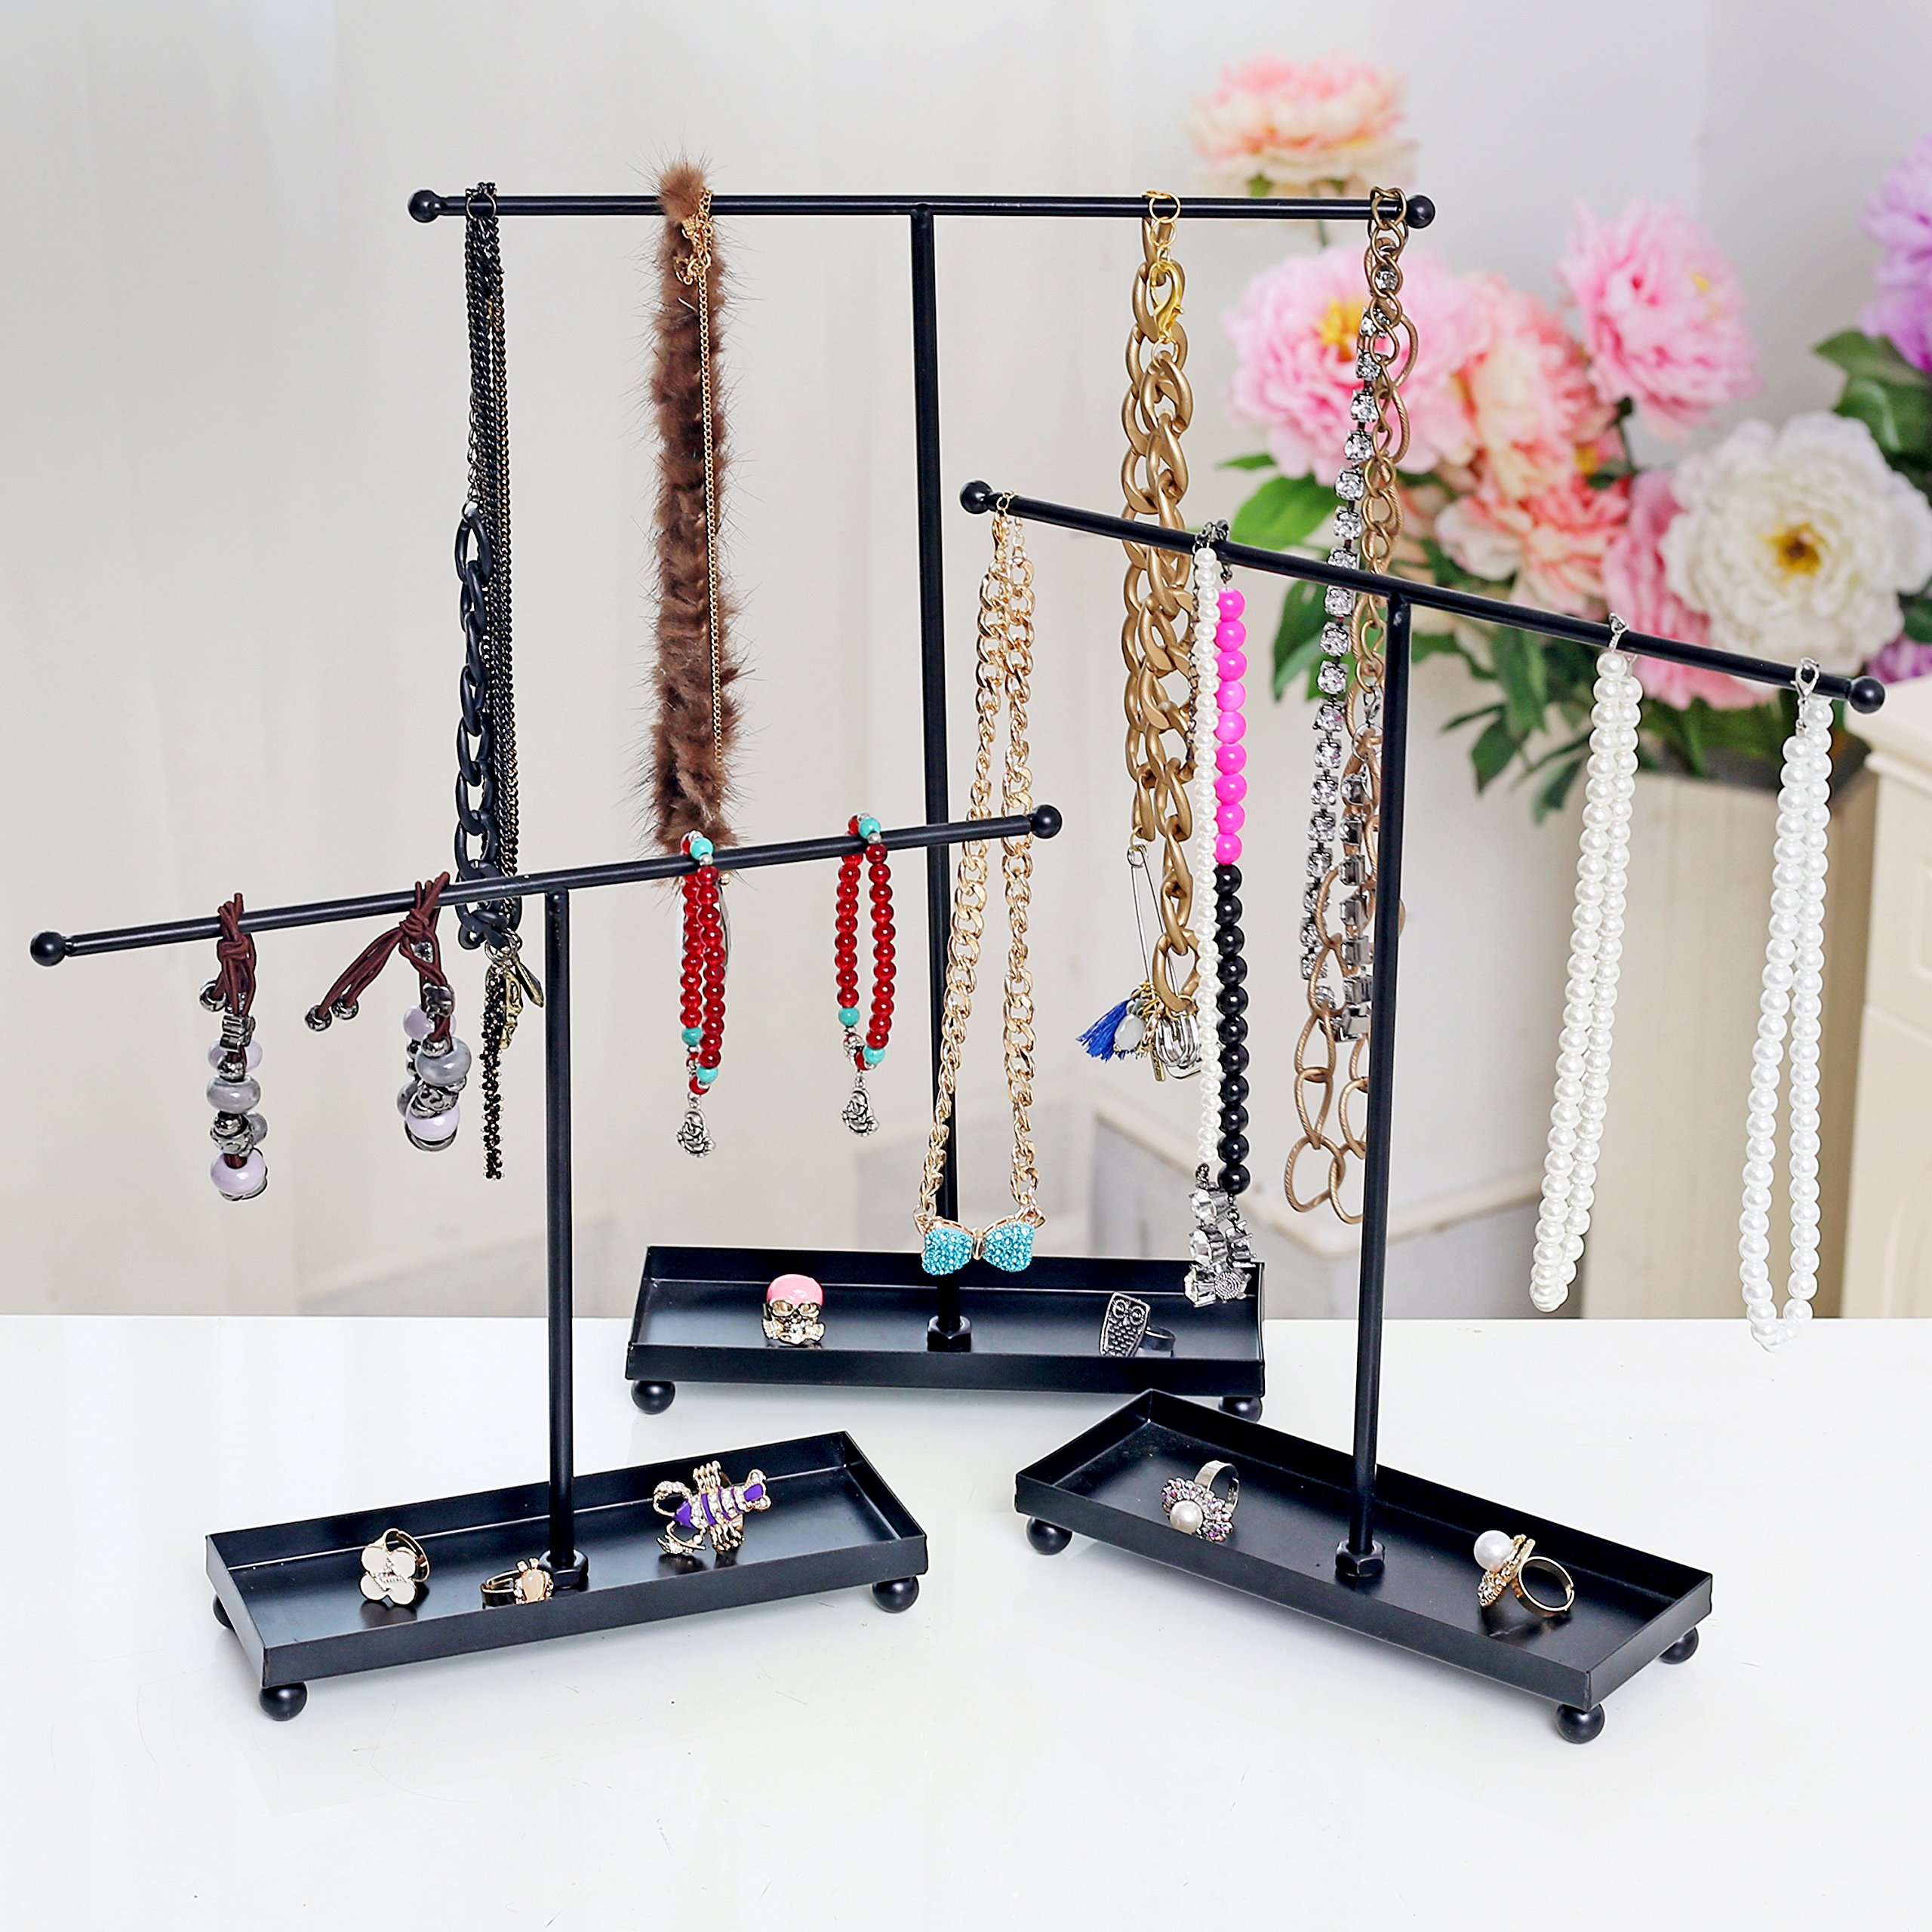 Set of 3 Modern Jewelry Organizers, Tabletop Bracelet & Necklace Hangers w/ Ring Dish, Black by MyGift (Image #1)